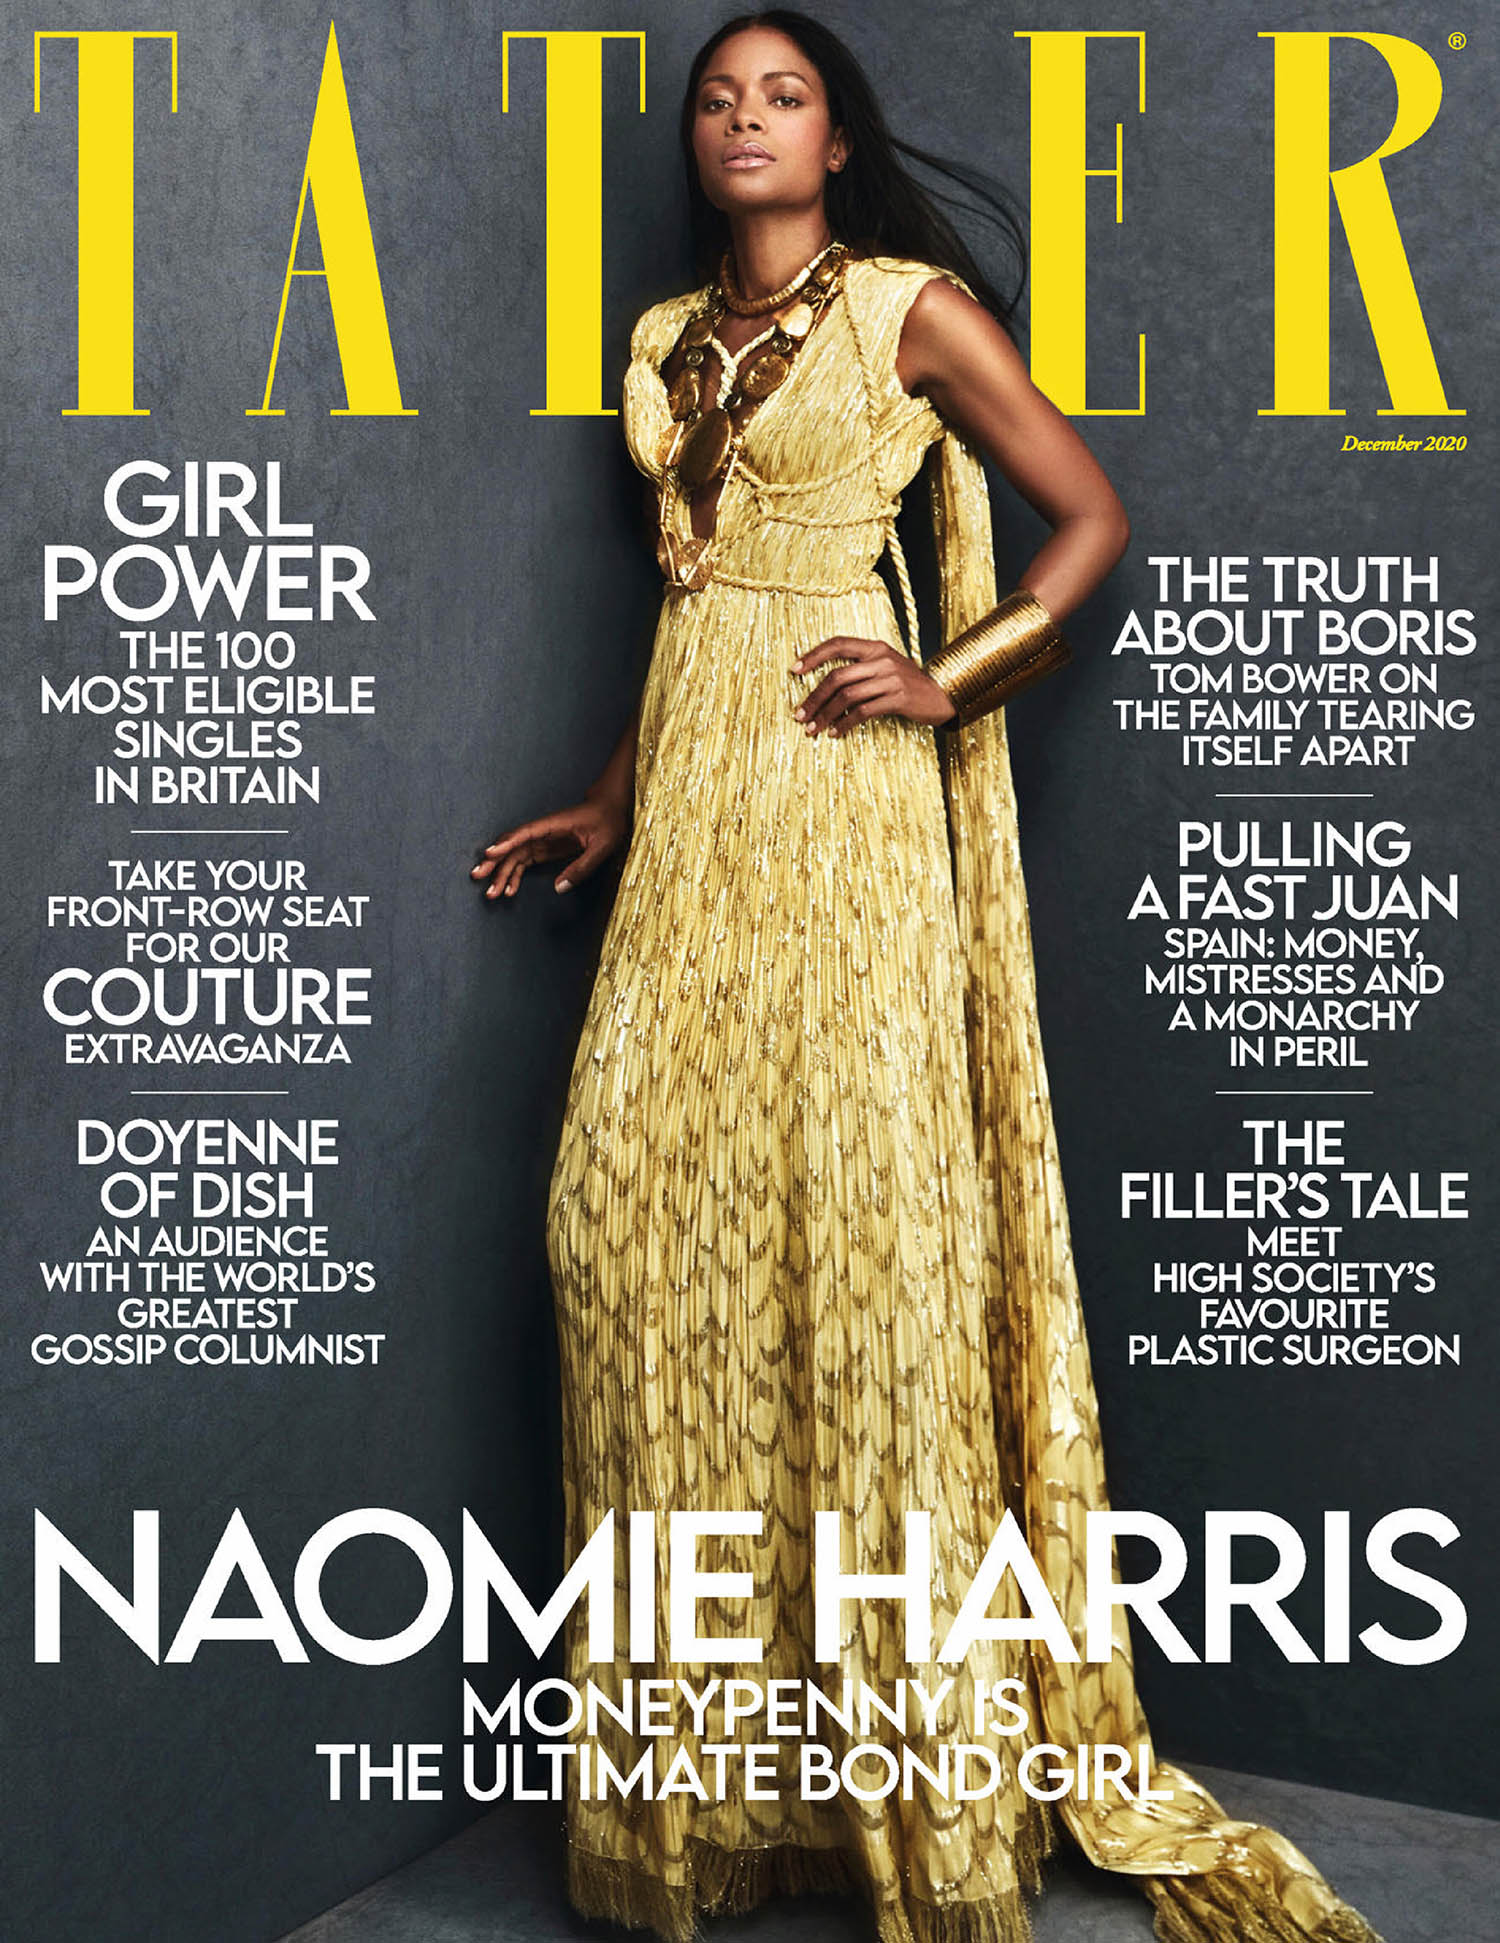 Naomie Harris covers Tatler UK December 2020 by Txema Yeste